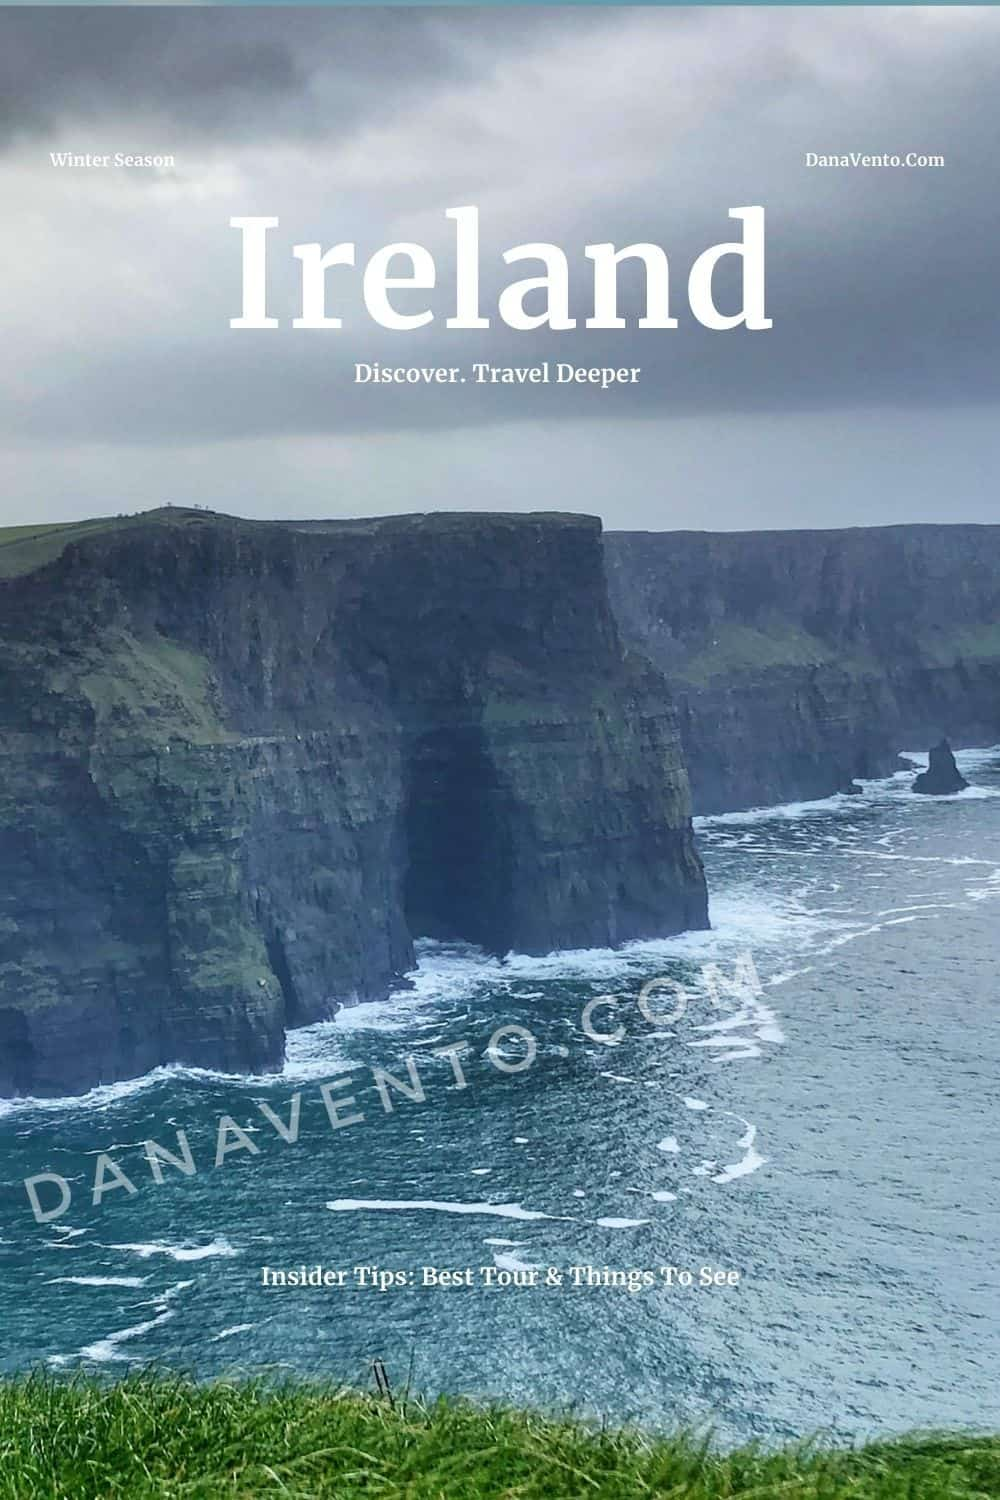 Ireland Cliffs of Moher Image with rain